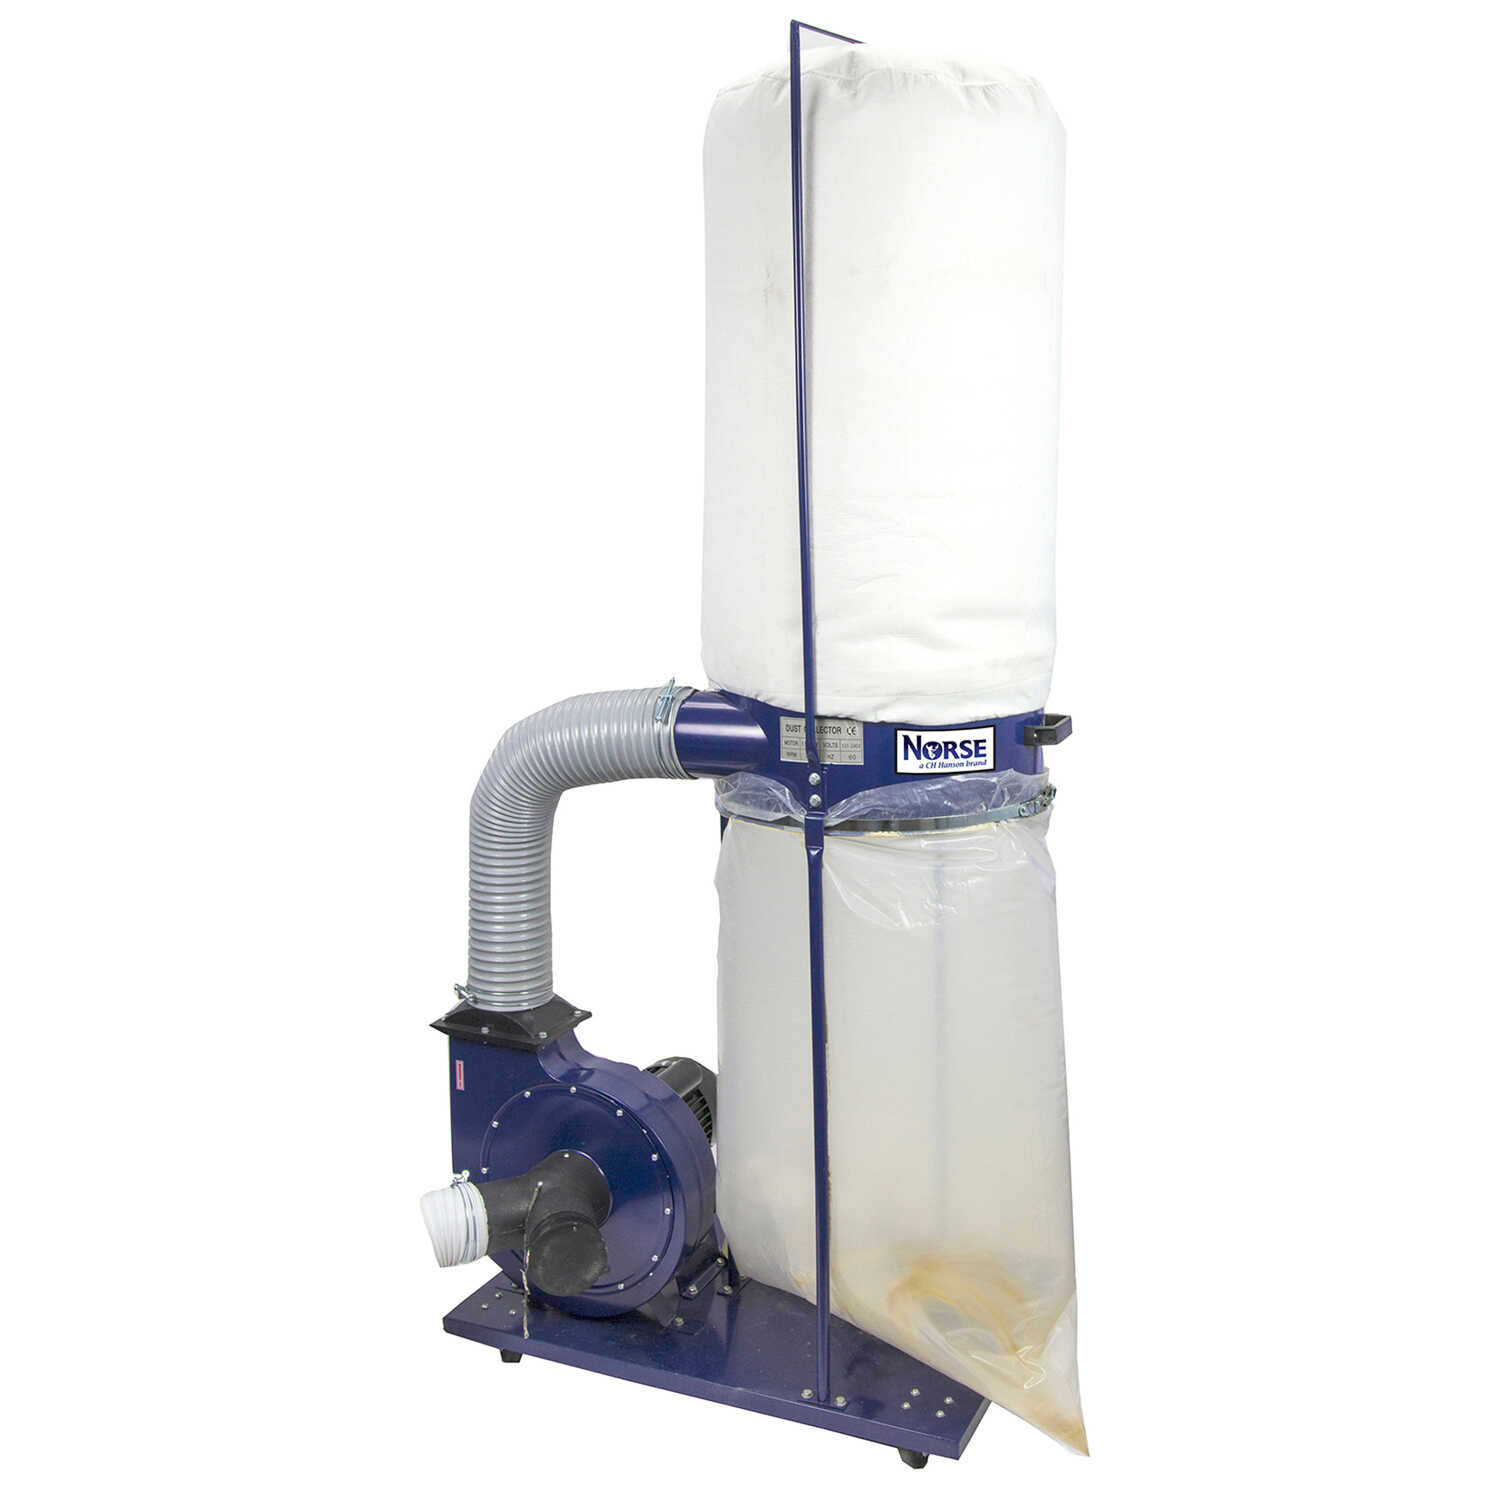 C.H. Hanson  Norse  Portable Dust Collector  120 volt 36 in. W x 76 in. H 1 pc. 2 hp 3400 rpm